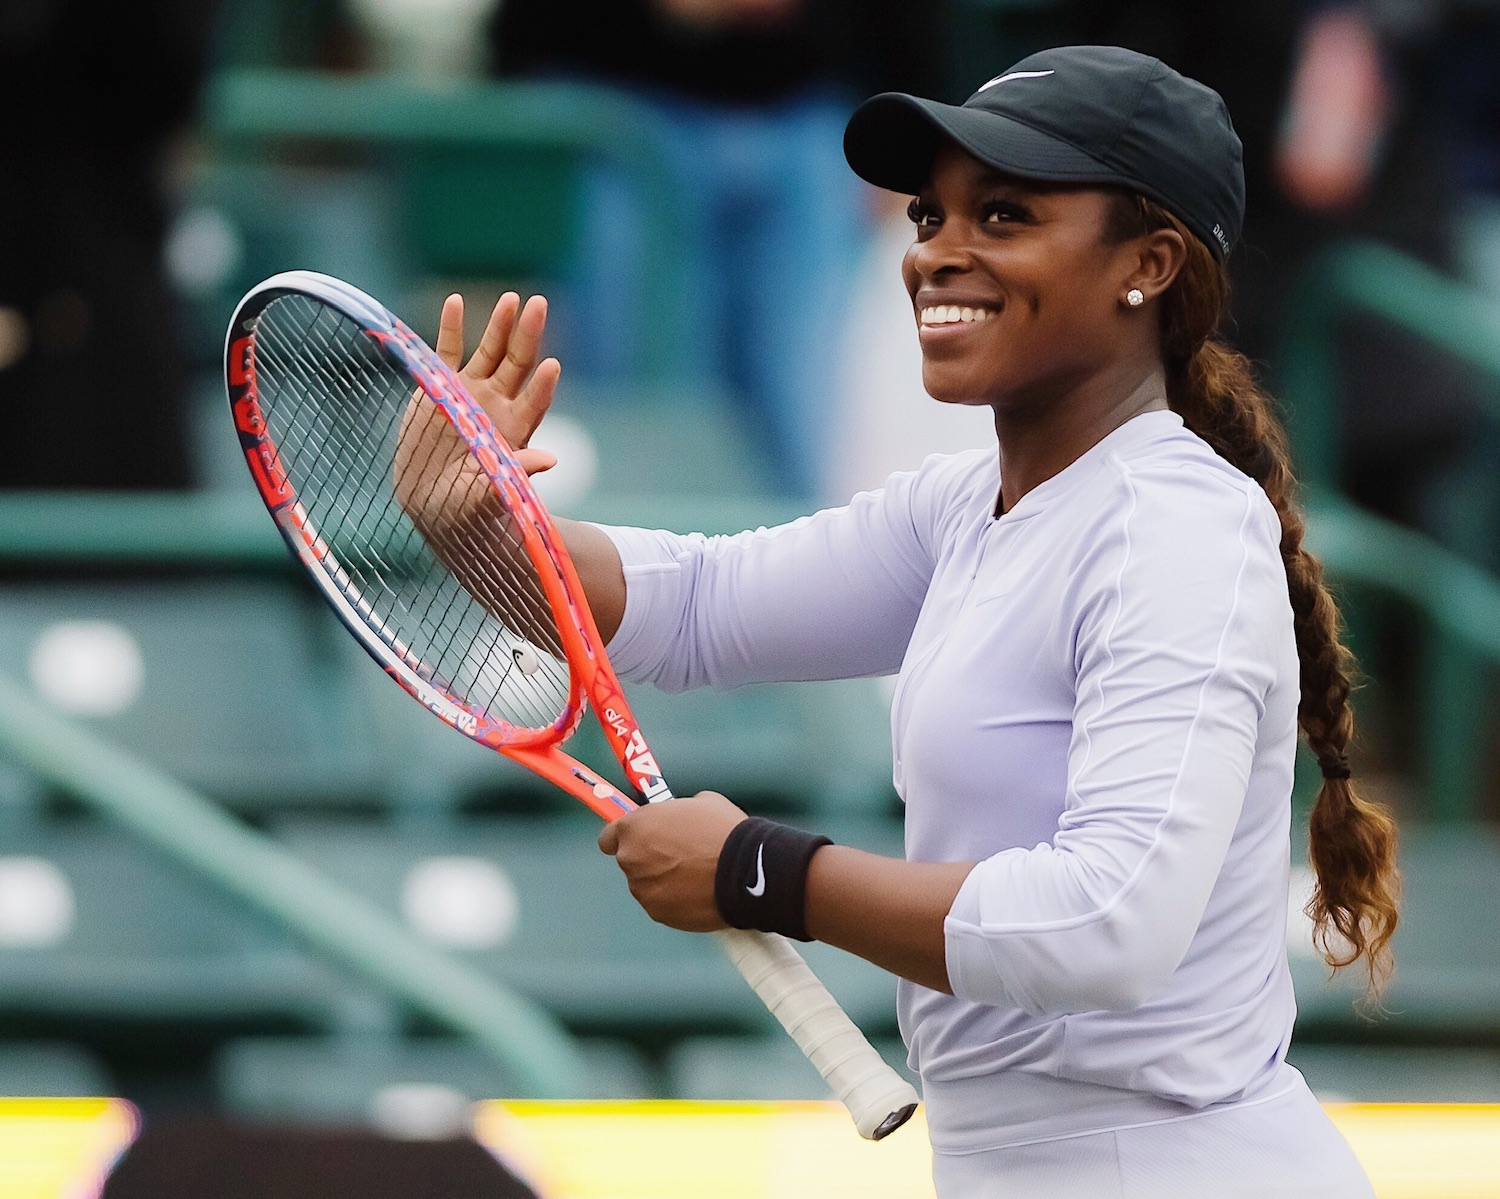 Tennis Icon Sloane Stephens Has a Drive for Success